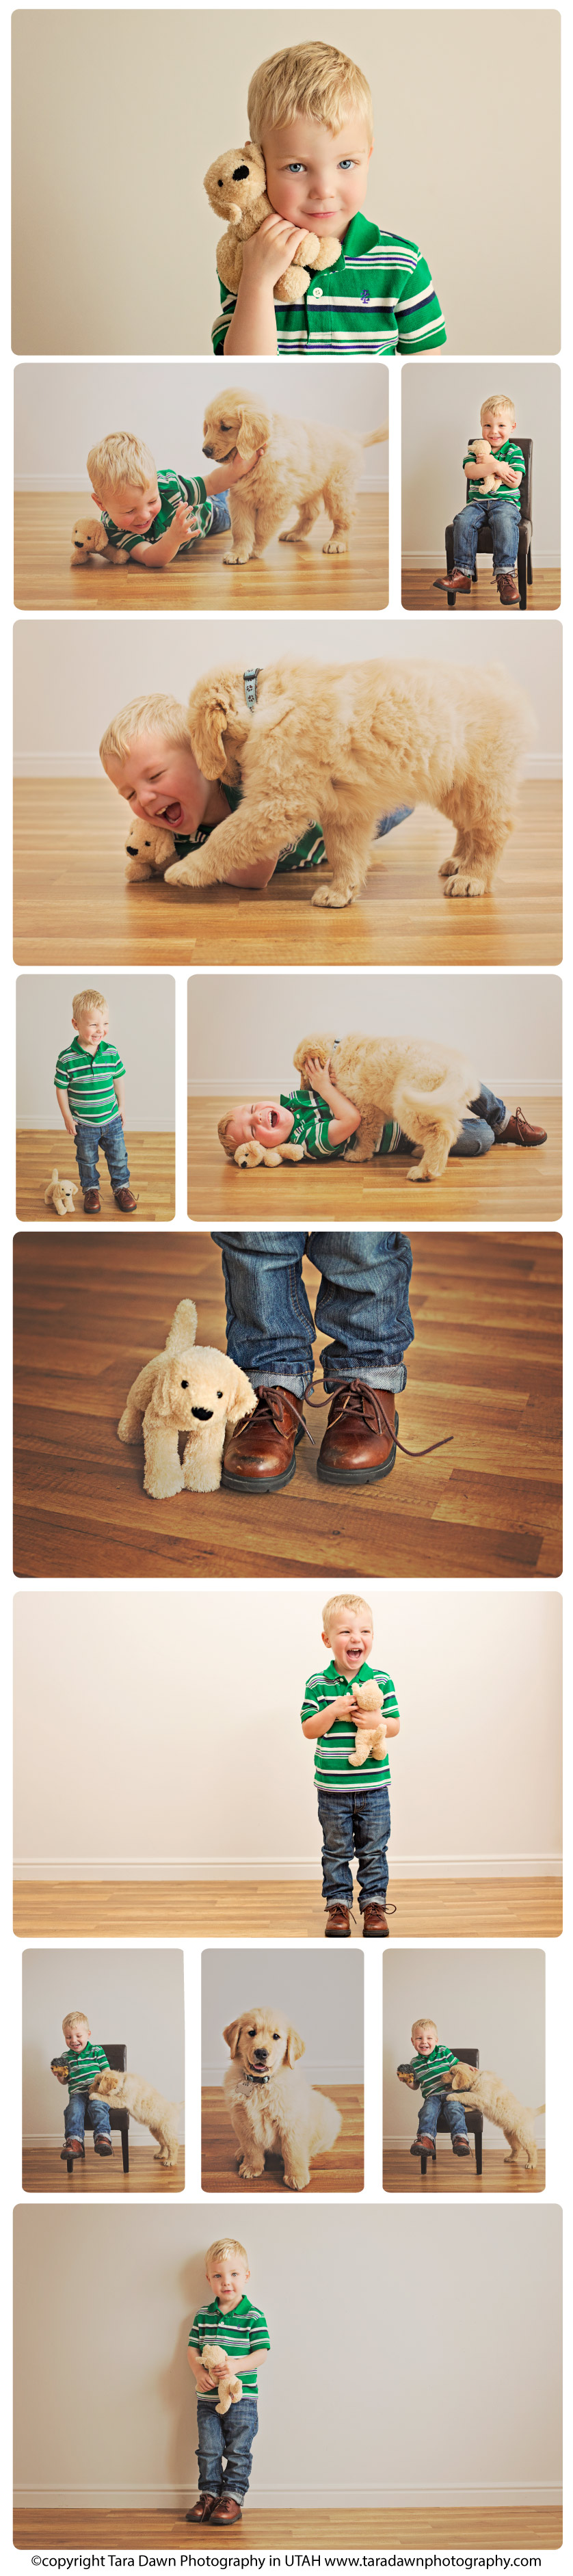 utah_child_pet_photographer_studio